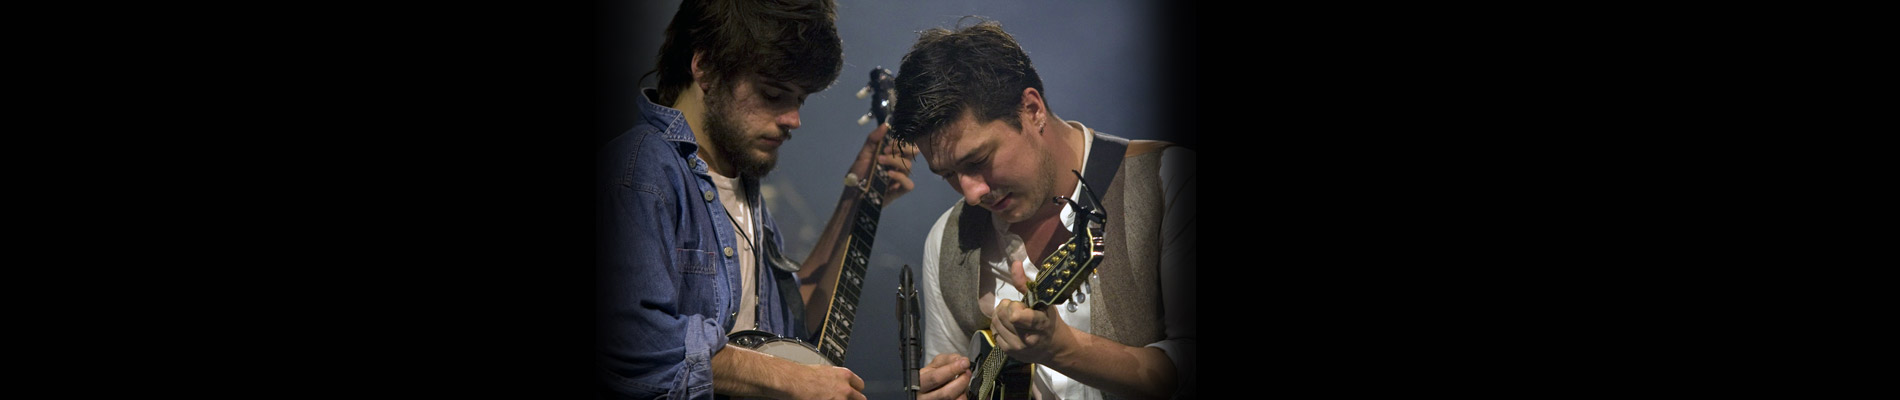 Mumford And Sons Live Concert Tickets